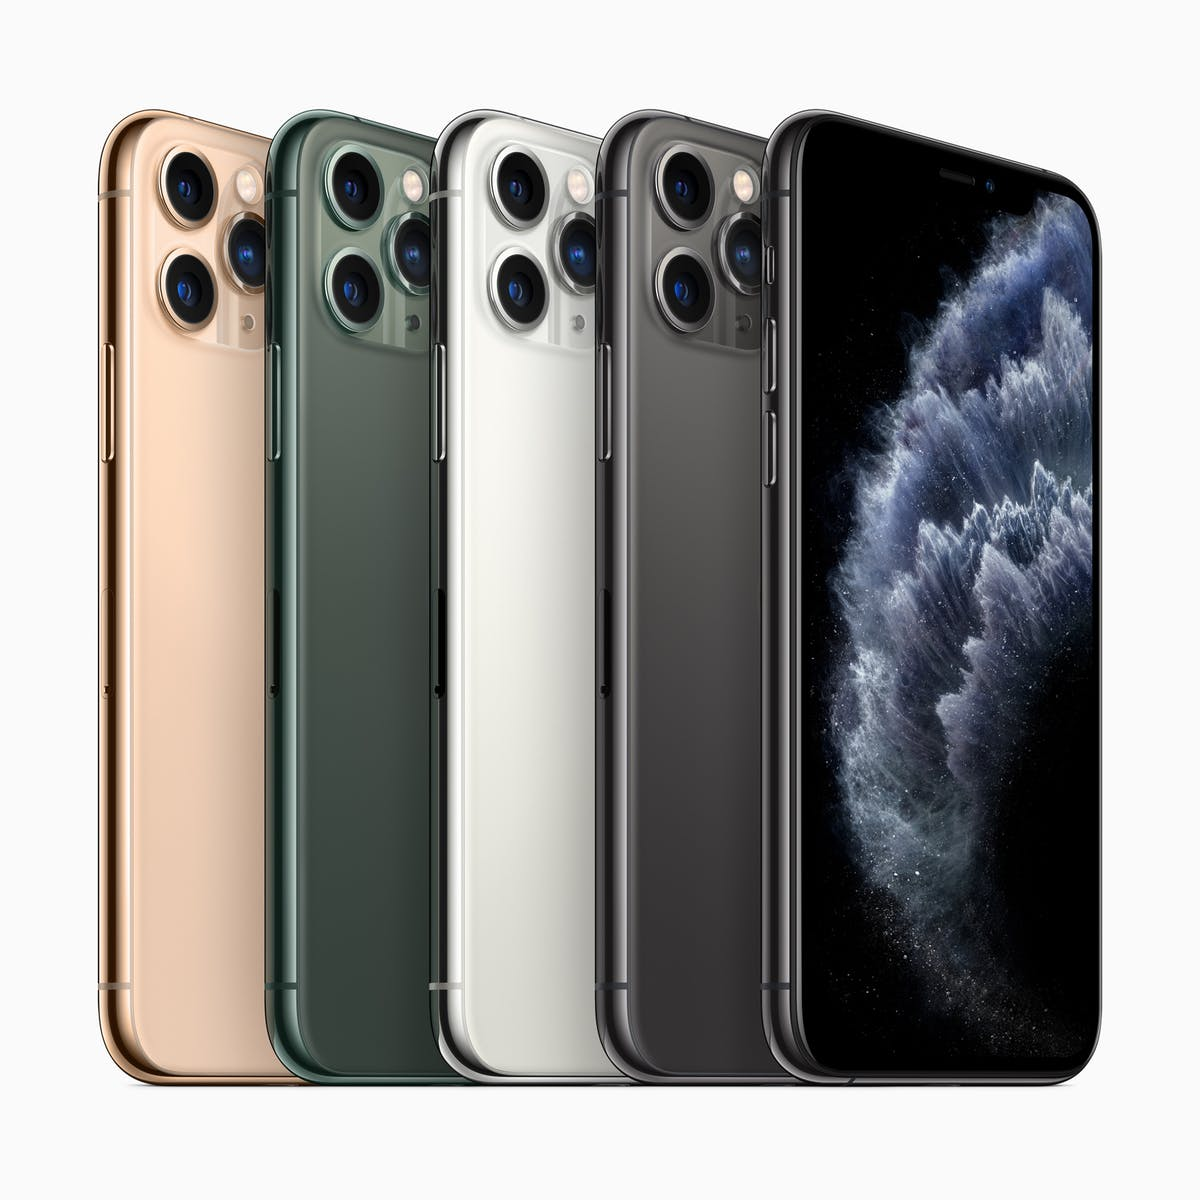 iPhone 11 Pro: How to Get Apple's Latest Smartphone if You Miss Pre-Orders